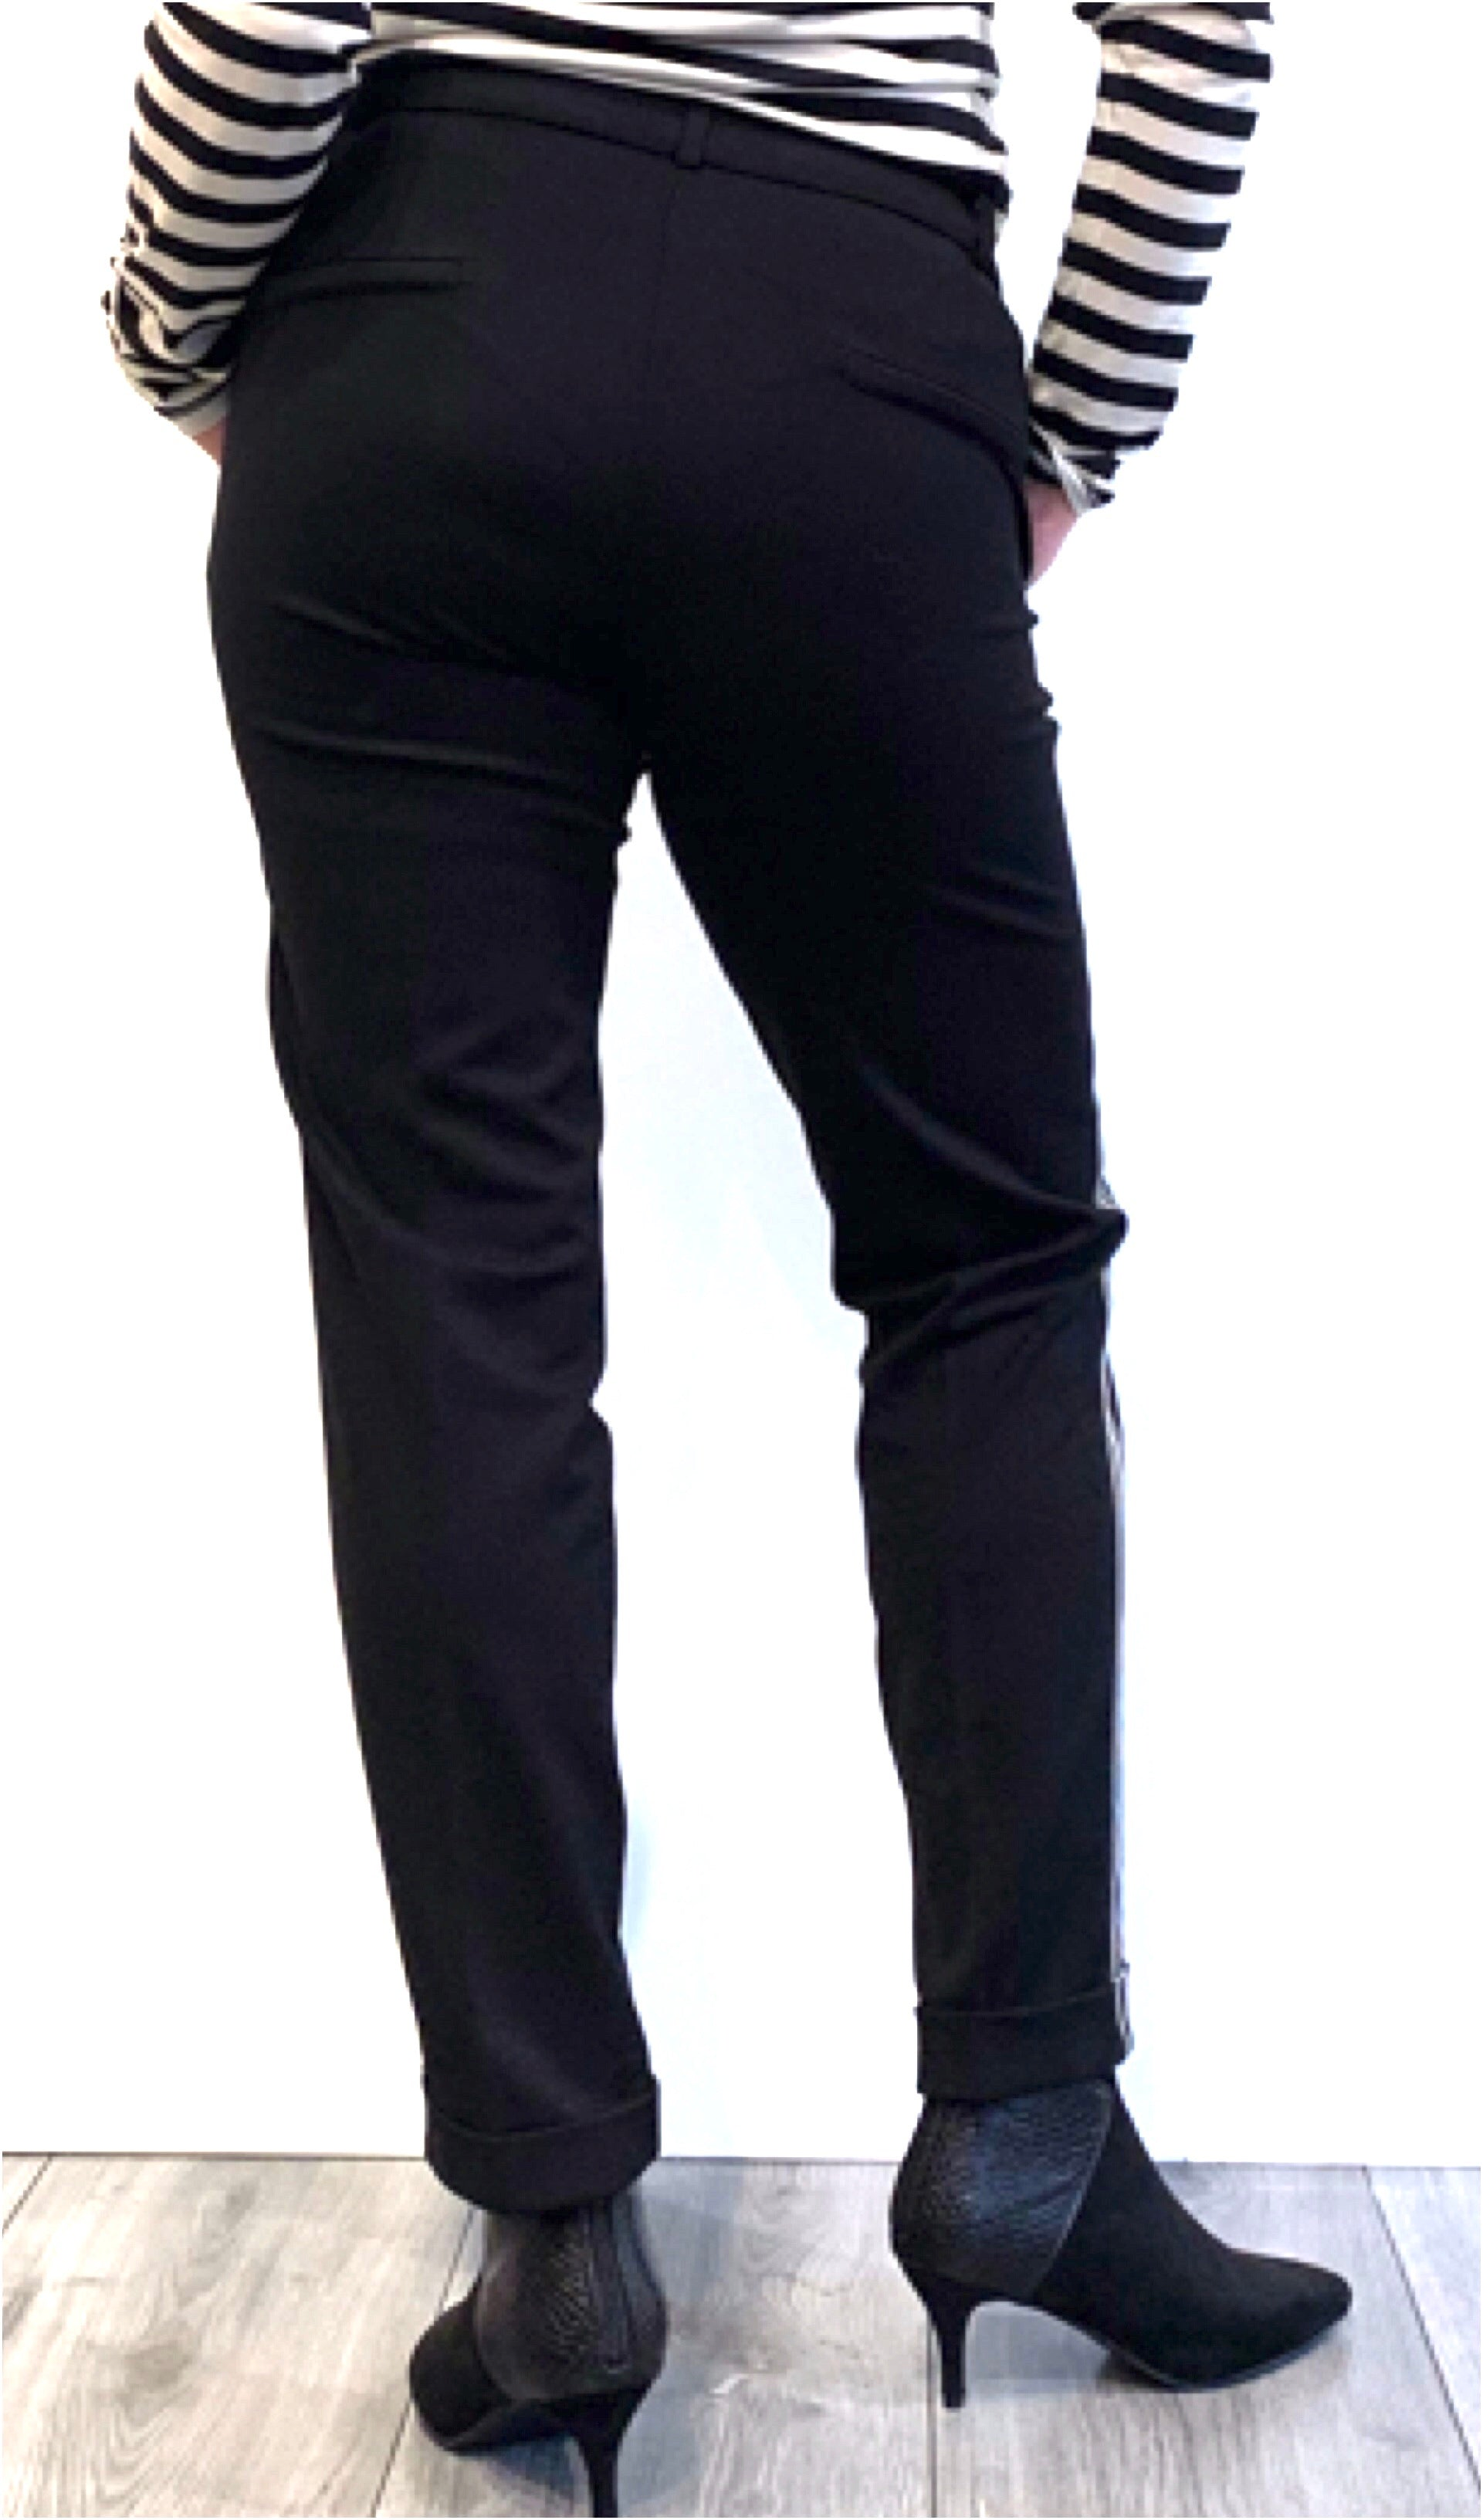 Trousers stretch melange